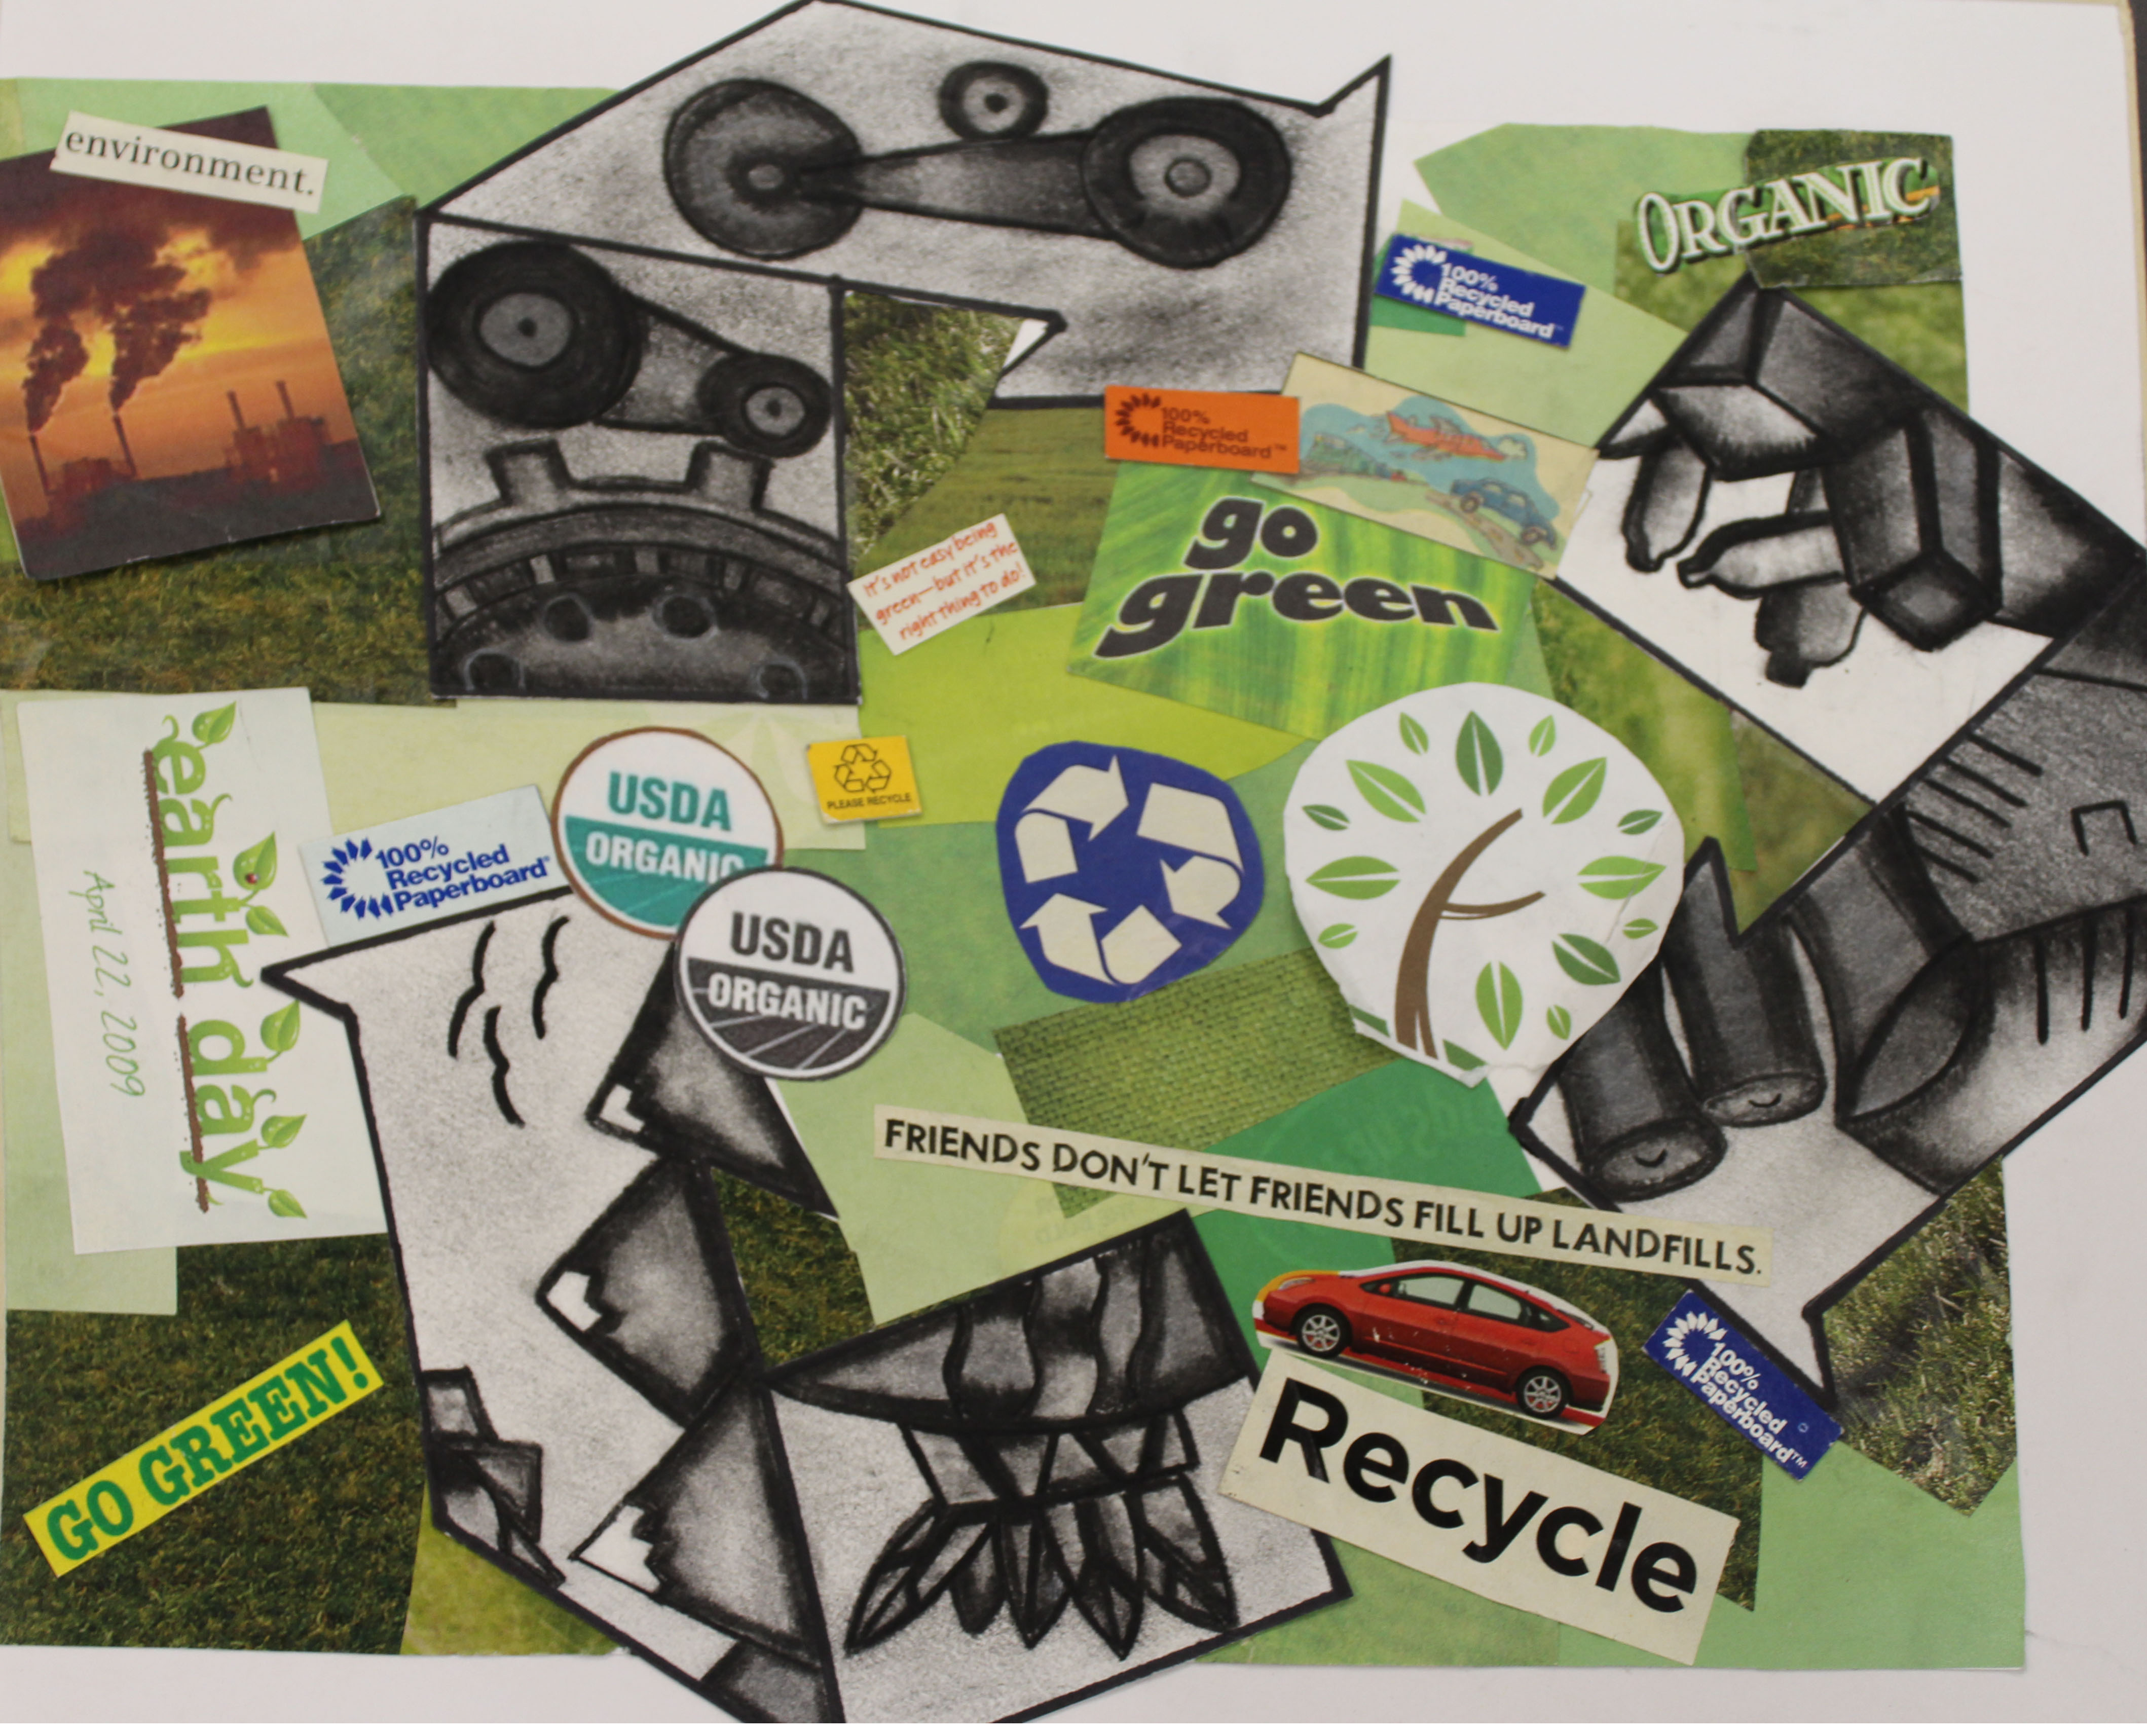 A collage created by Elizabeth D'Amore utilizing green as base color and raising awareness for recycling